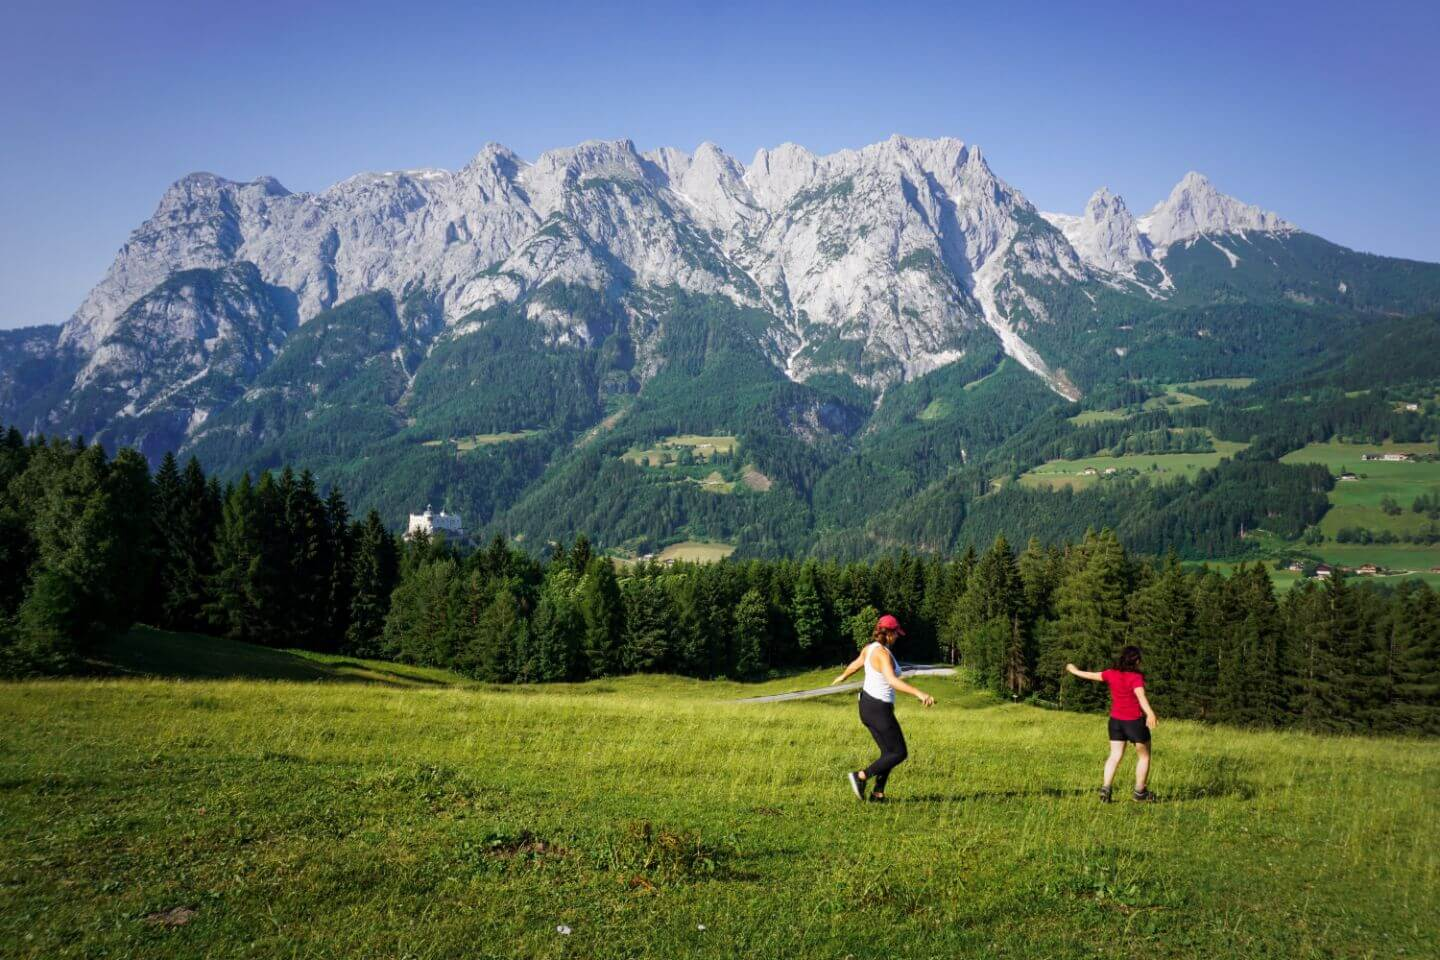 Tennengebirge, Do Re Mi Sound of Music Filming Location - Best Places to Visit in Austria